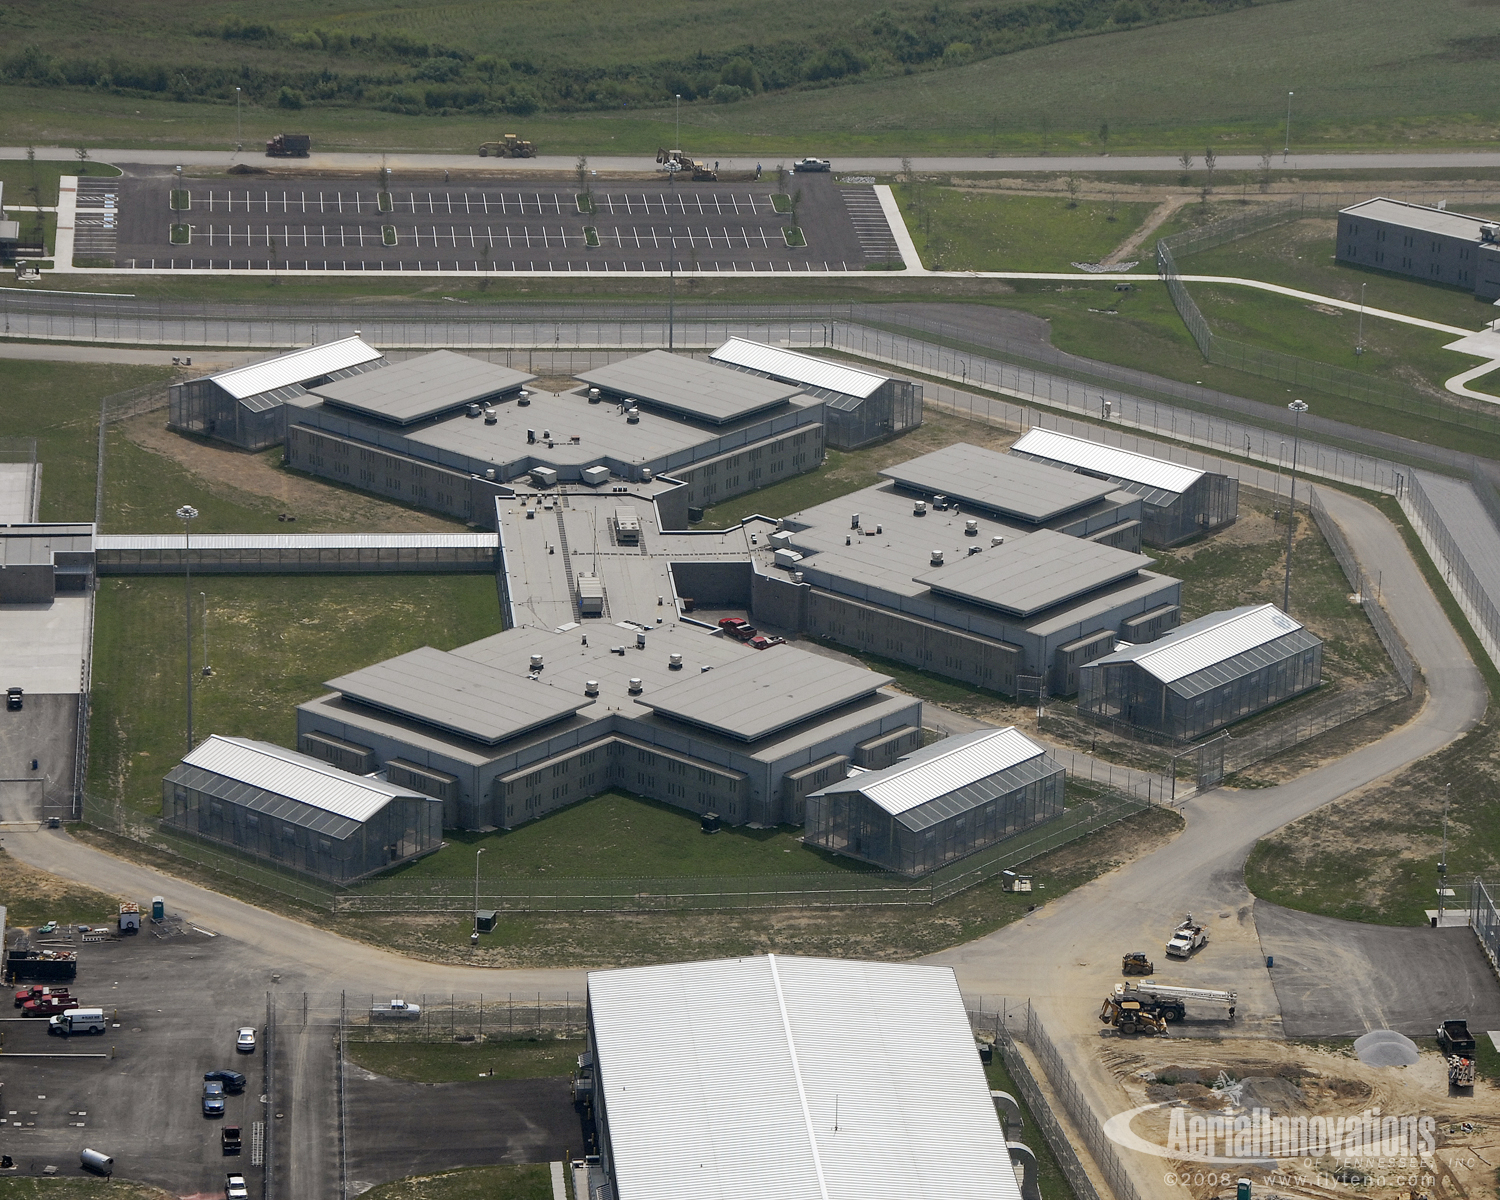 Morgan County Correctional Complex, government roofing and construction contractors